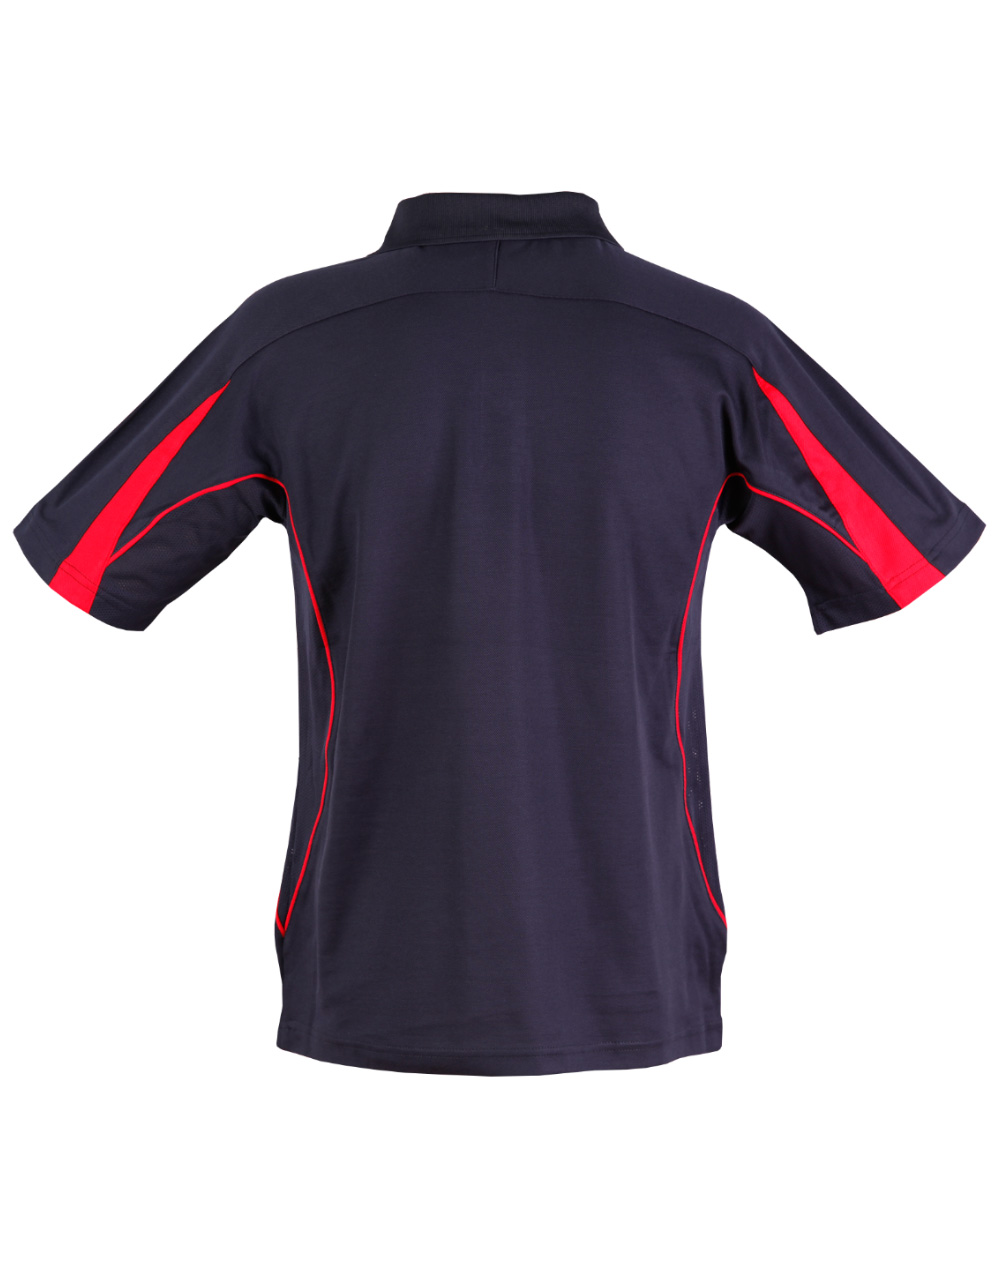 https://s3-ap-southeast-1.amazonaws.com/ws-imgs/POLOSHIRTS/PS53_NavyRed_BACK_l.jpg